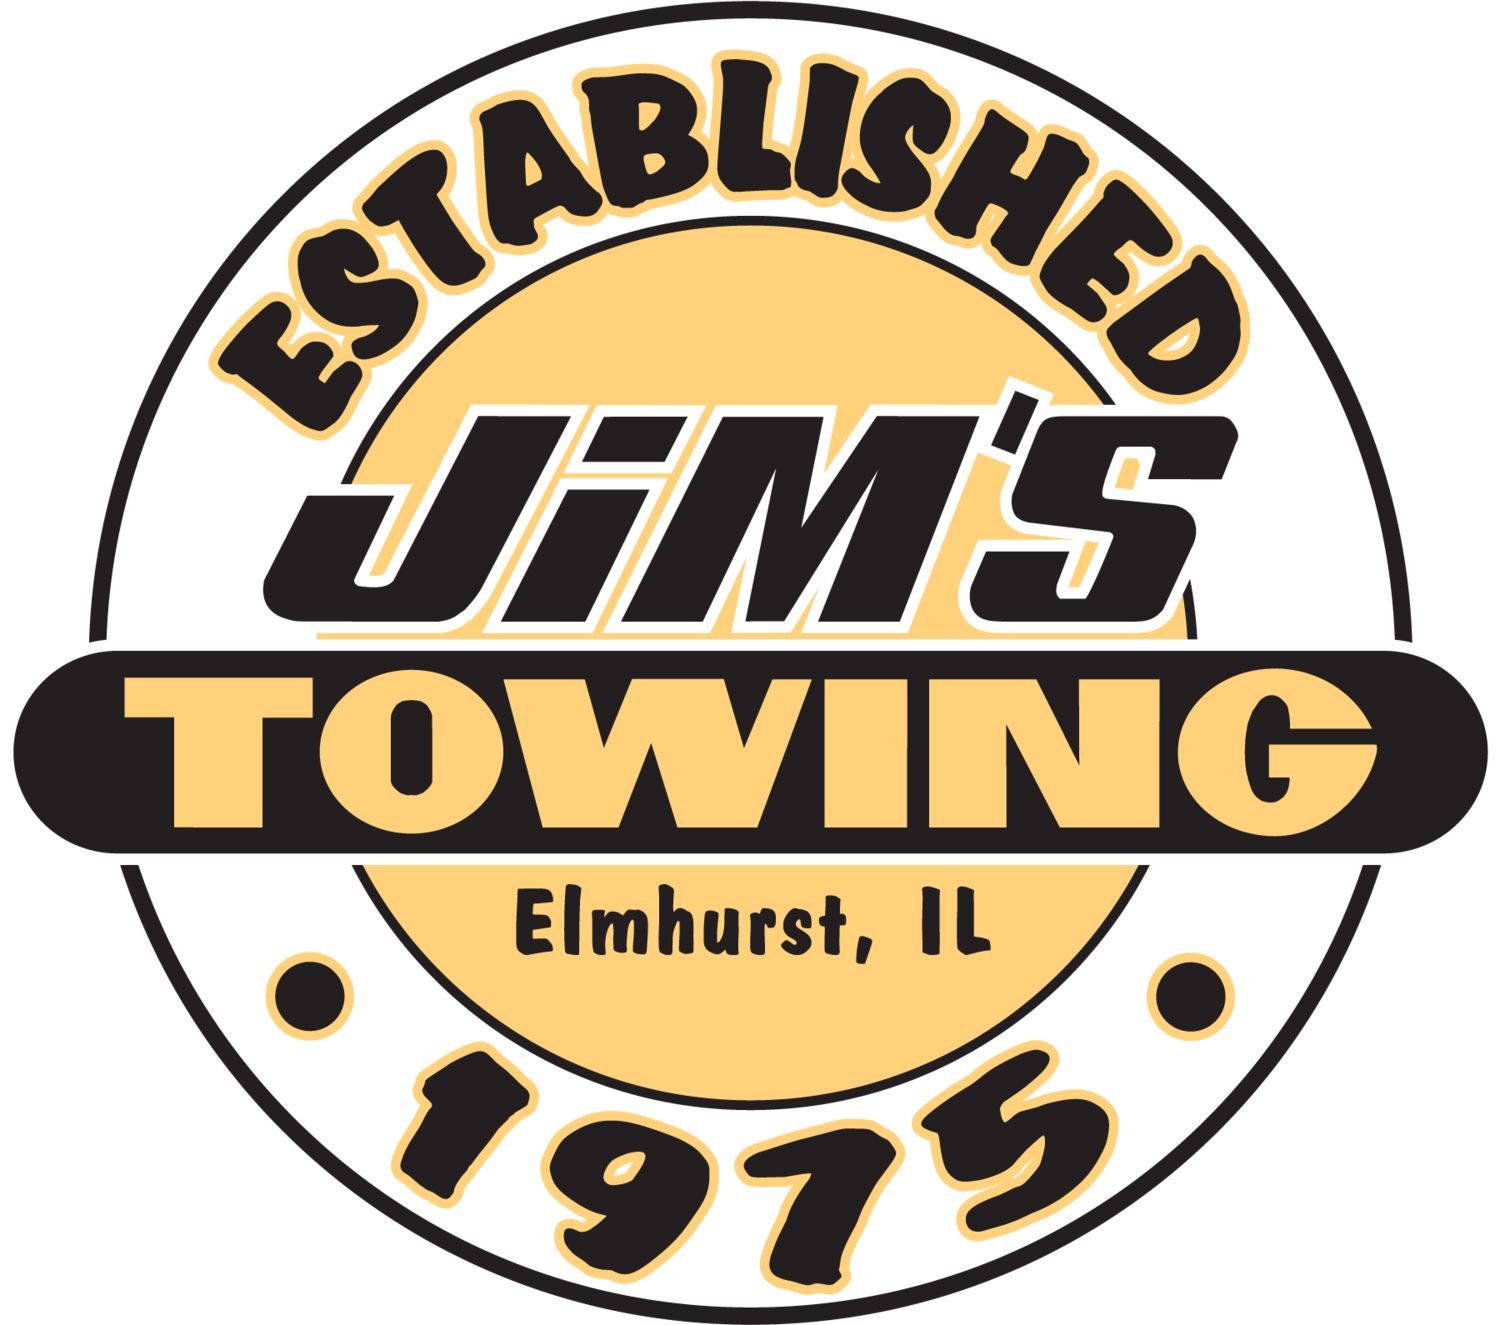 Jim's Towing - Elmhurst, IL